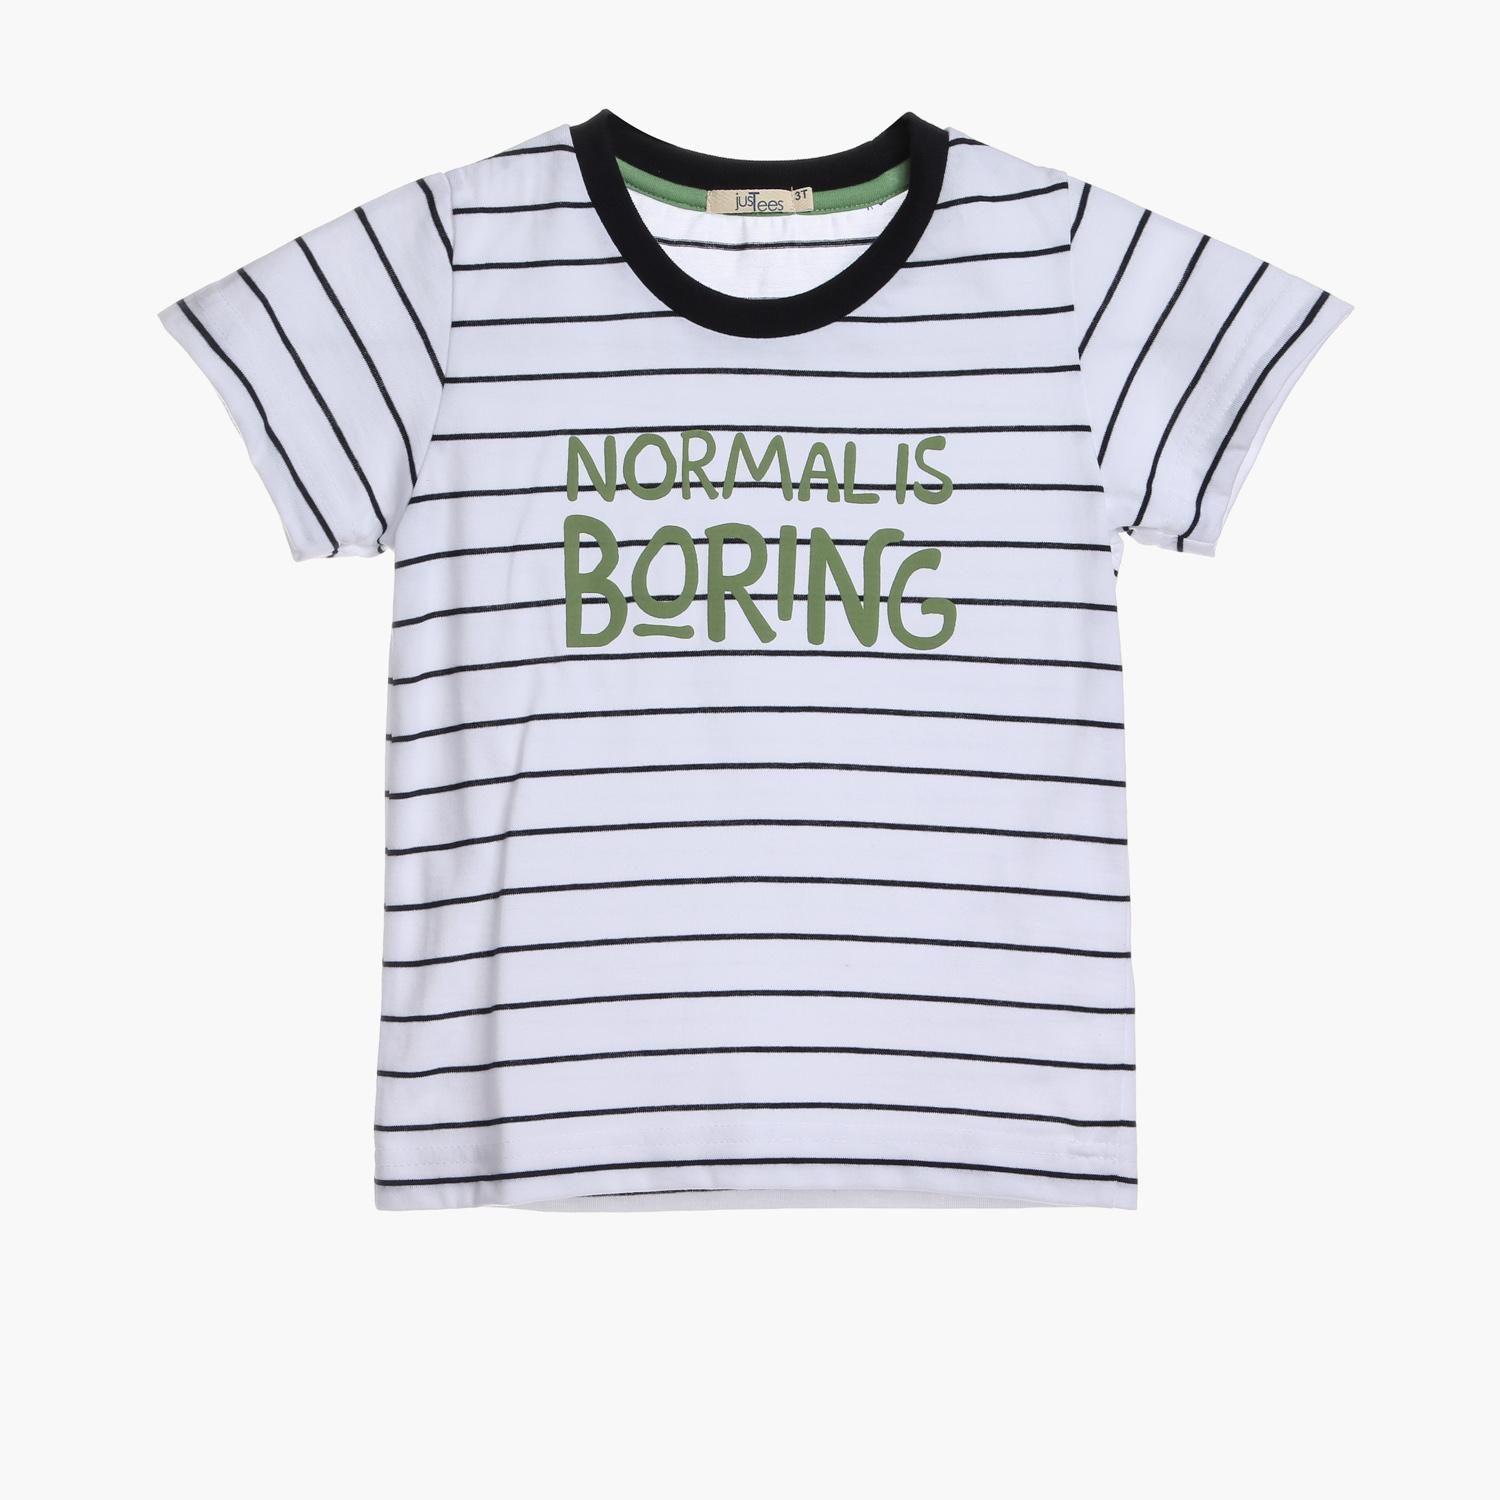 JusTees Toddler Boys Normal Is Boring Tee White